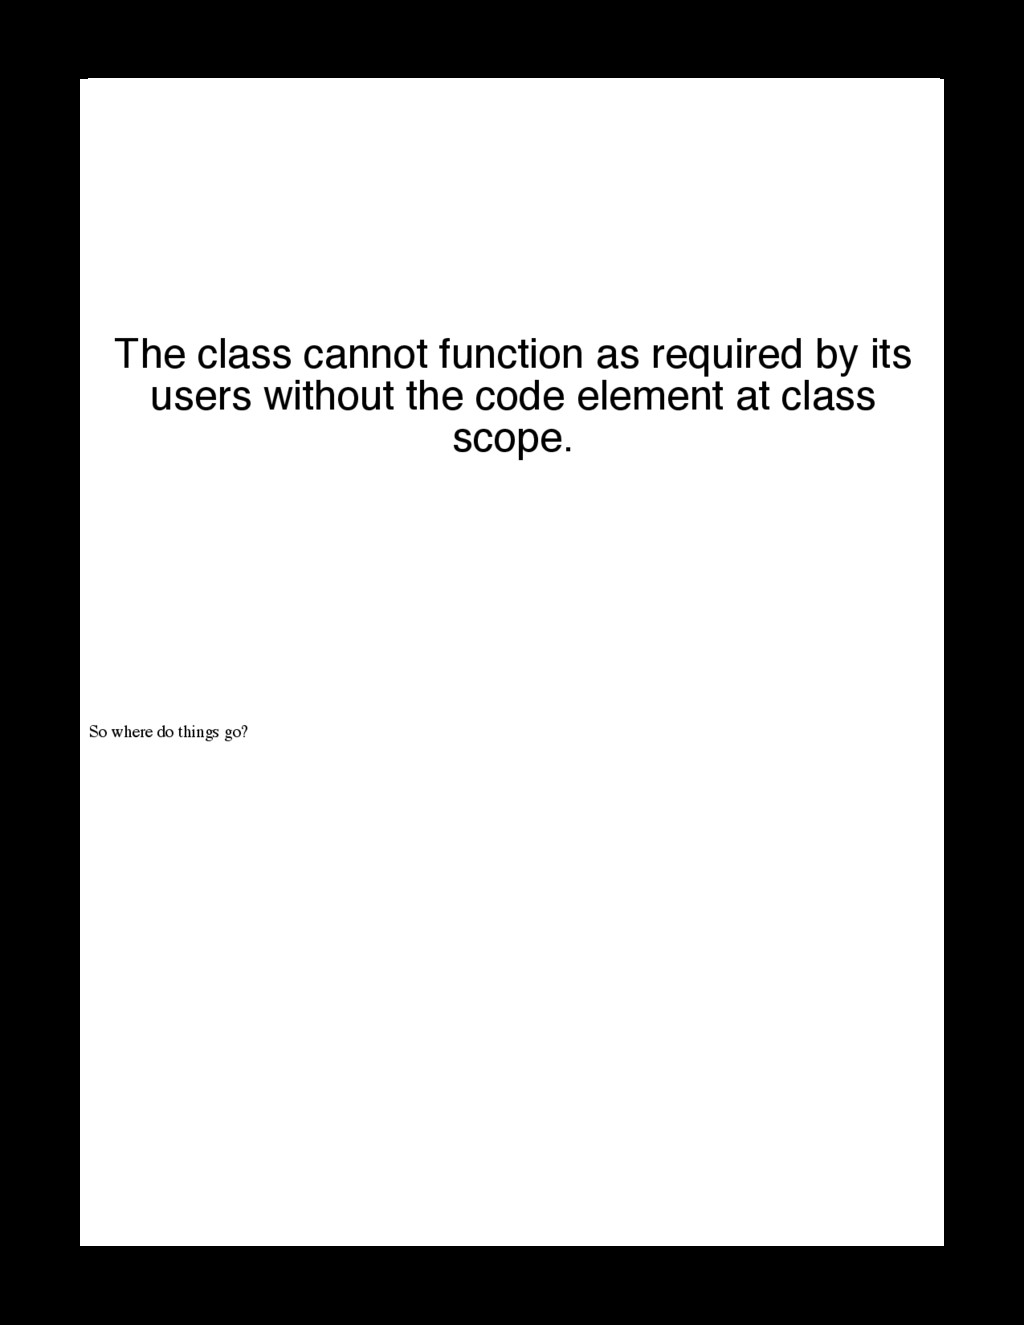 So where do things go? The class cannot functio...